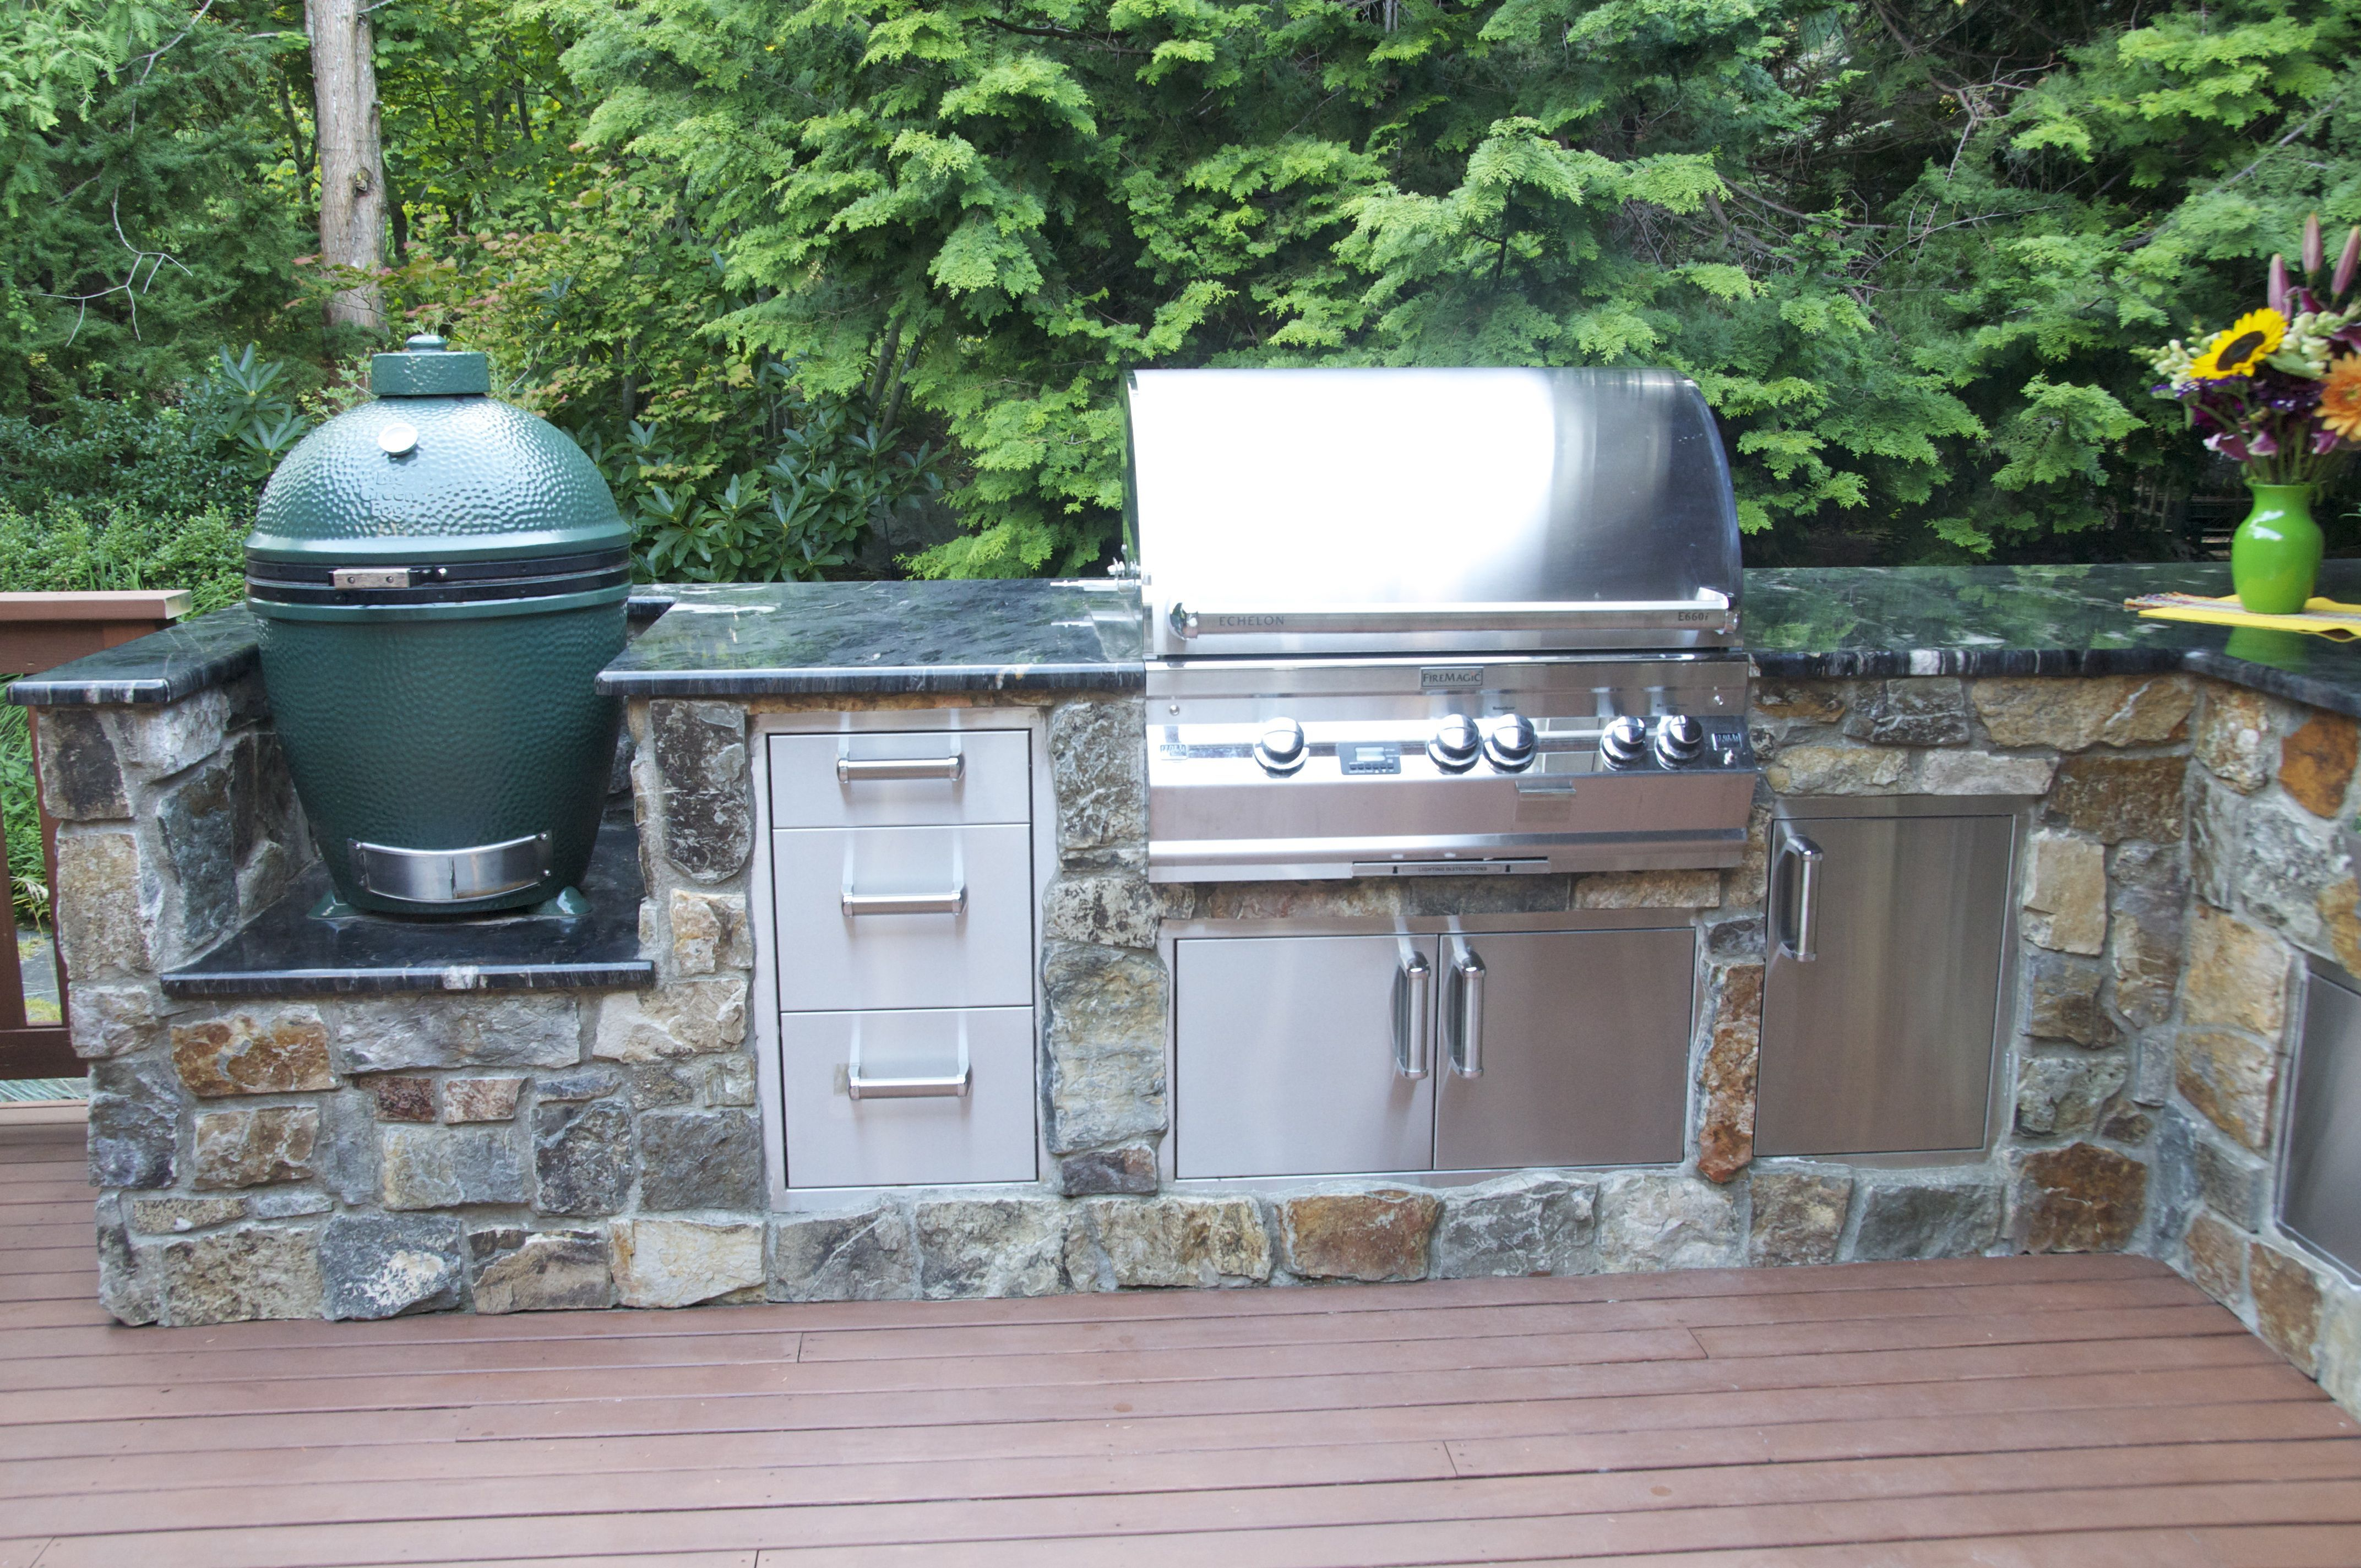 graysen woods outdoor kitchen island ideas for the backyard